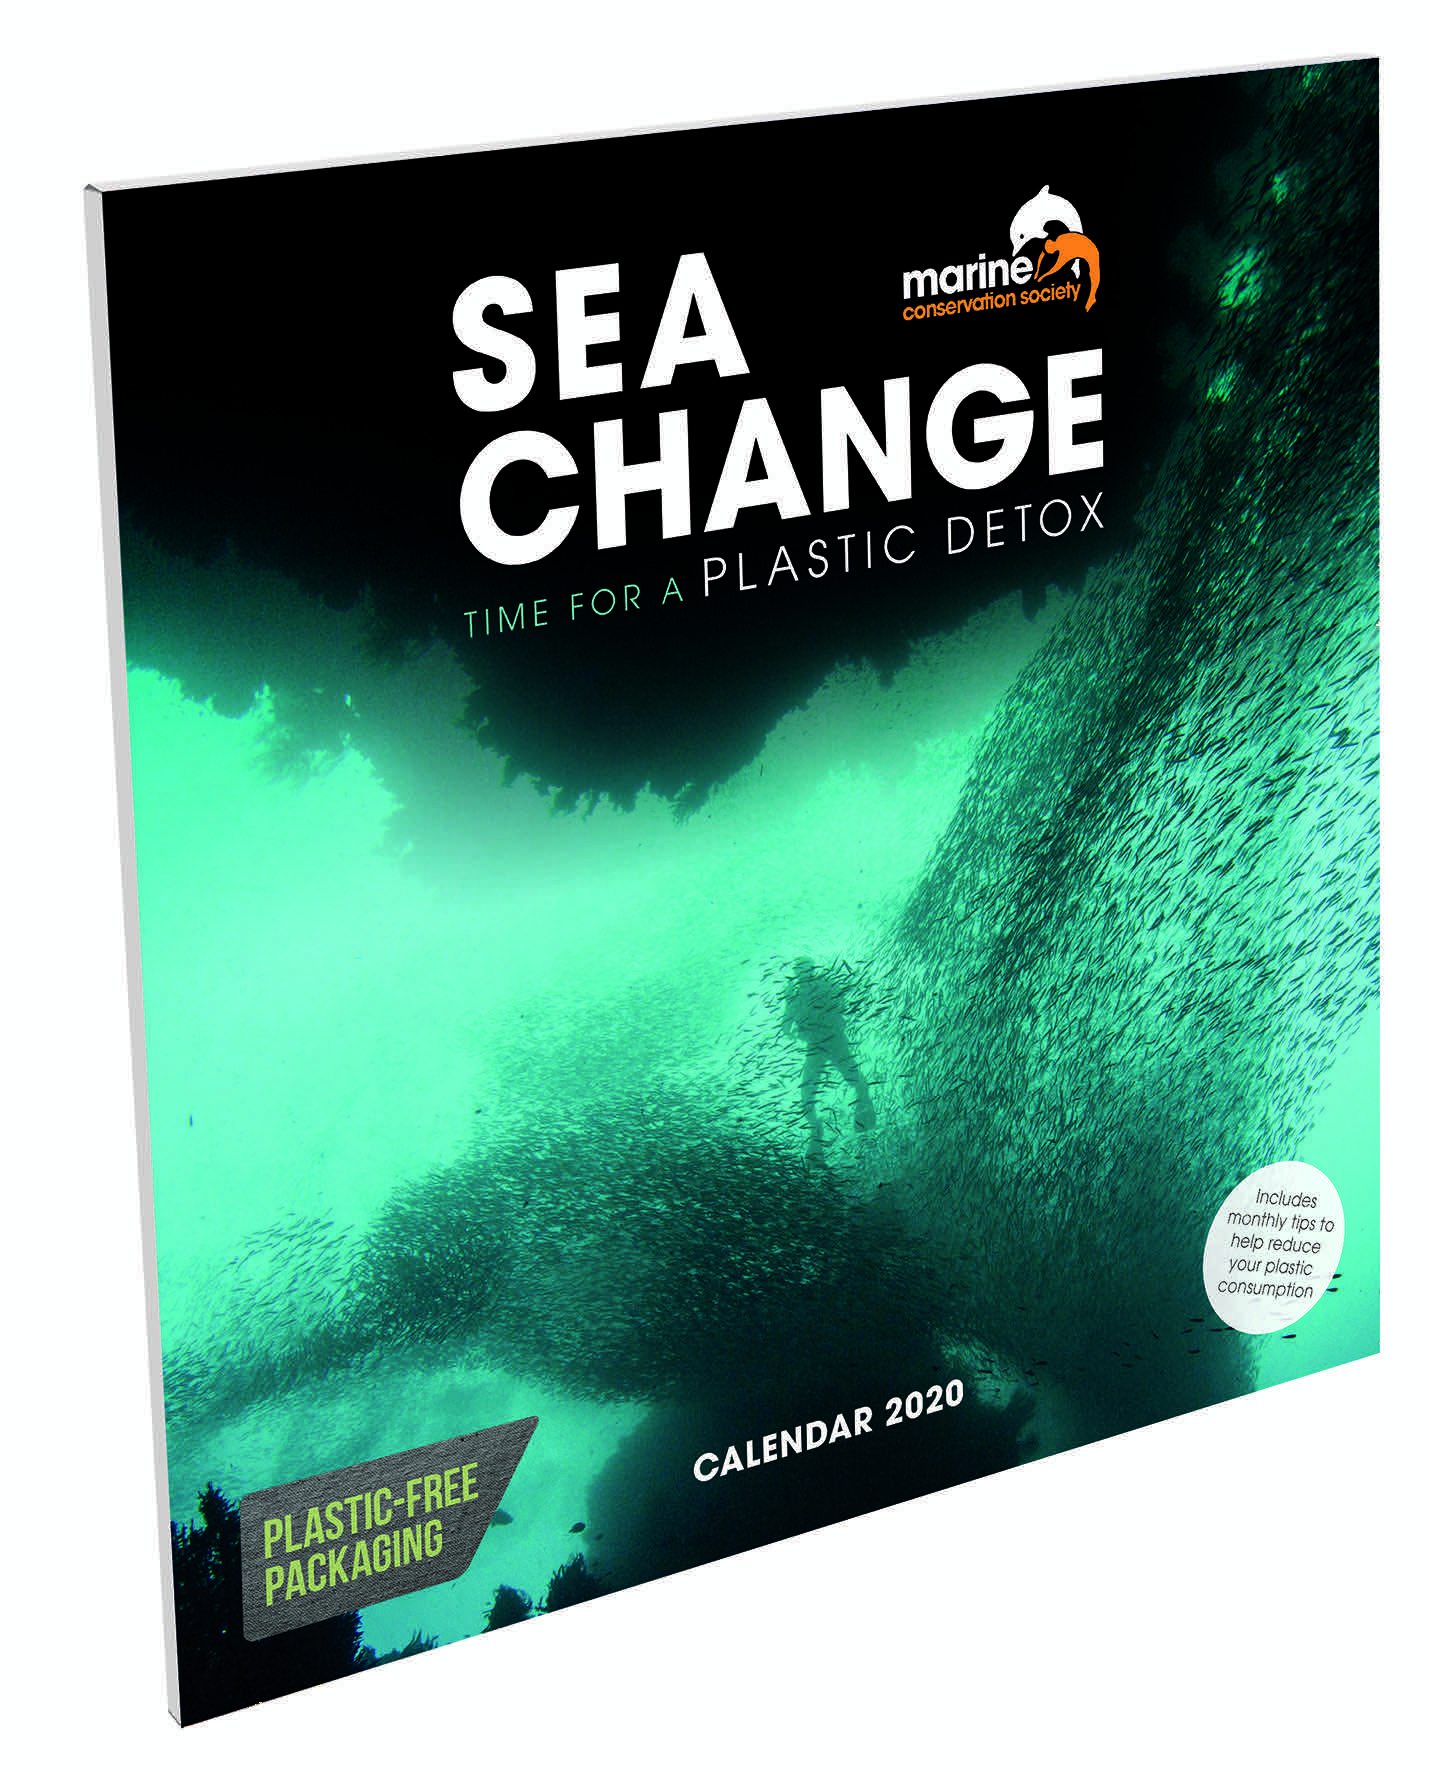 Above: The Sea Change title is one of the first to be featuring Carousel's new eco-friendly packaging approach.